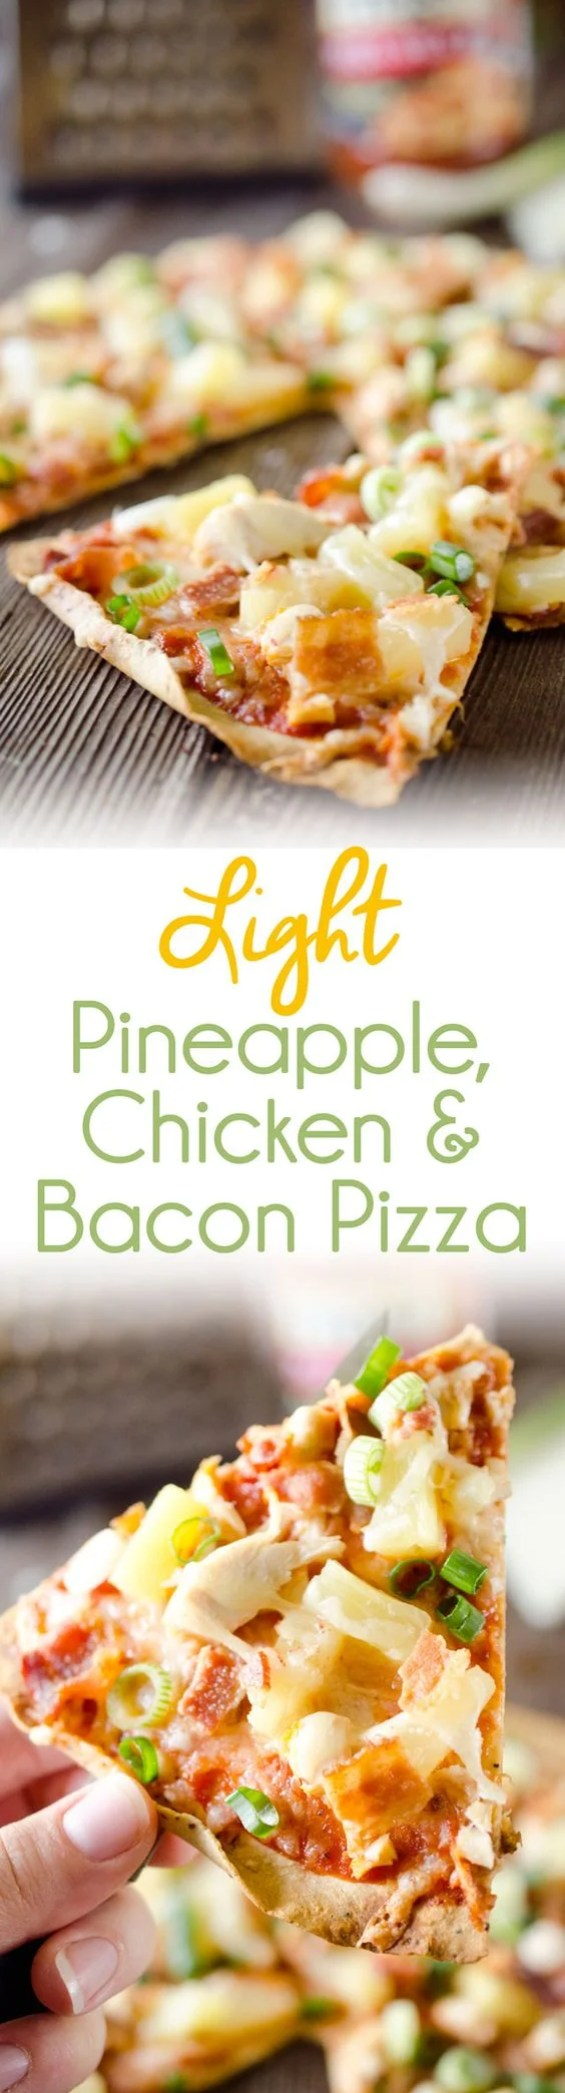 Try this DELICIOUS pizza recipe if you are looking for a fitter version of pizza for your next meal. You won't regret it!